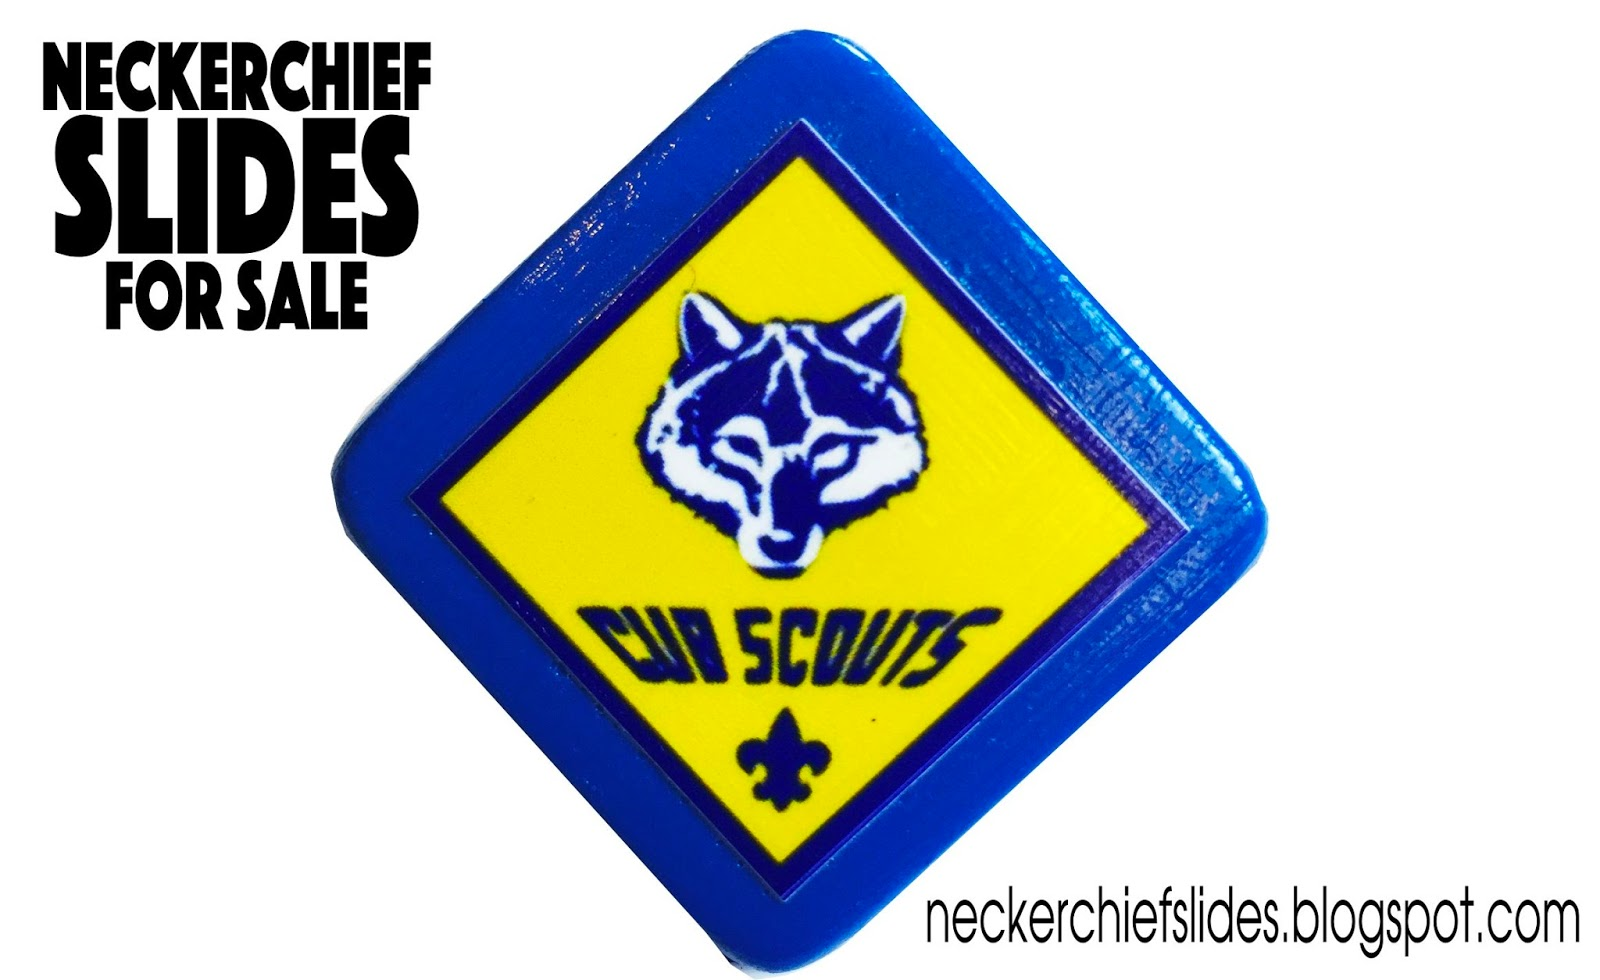 Cub Scout Logo Diamond Shaped Cub Scout Neckerchief Slides For